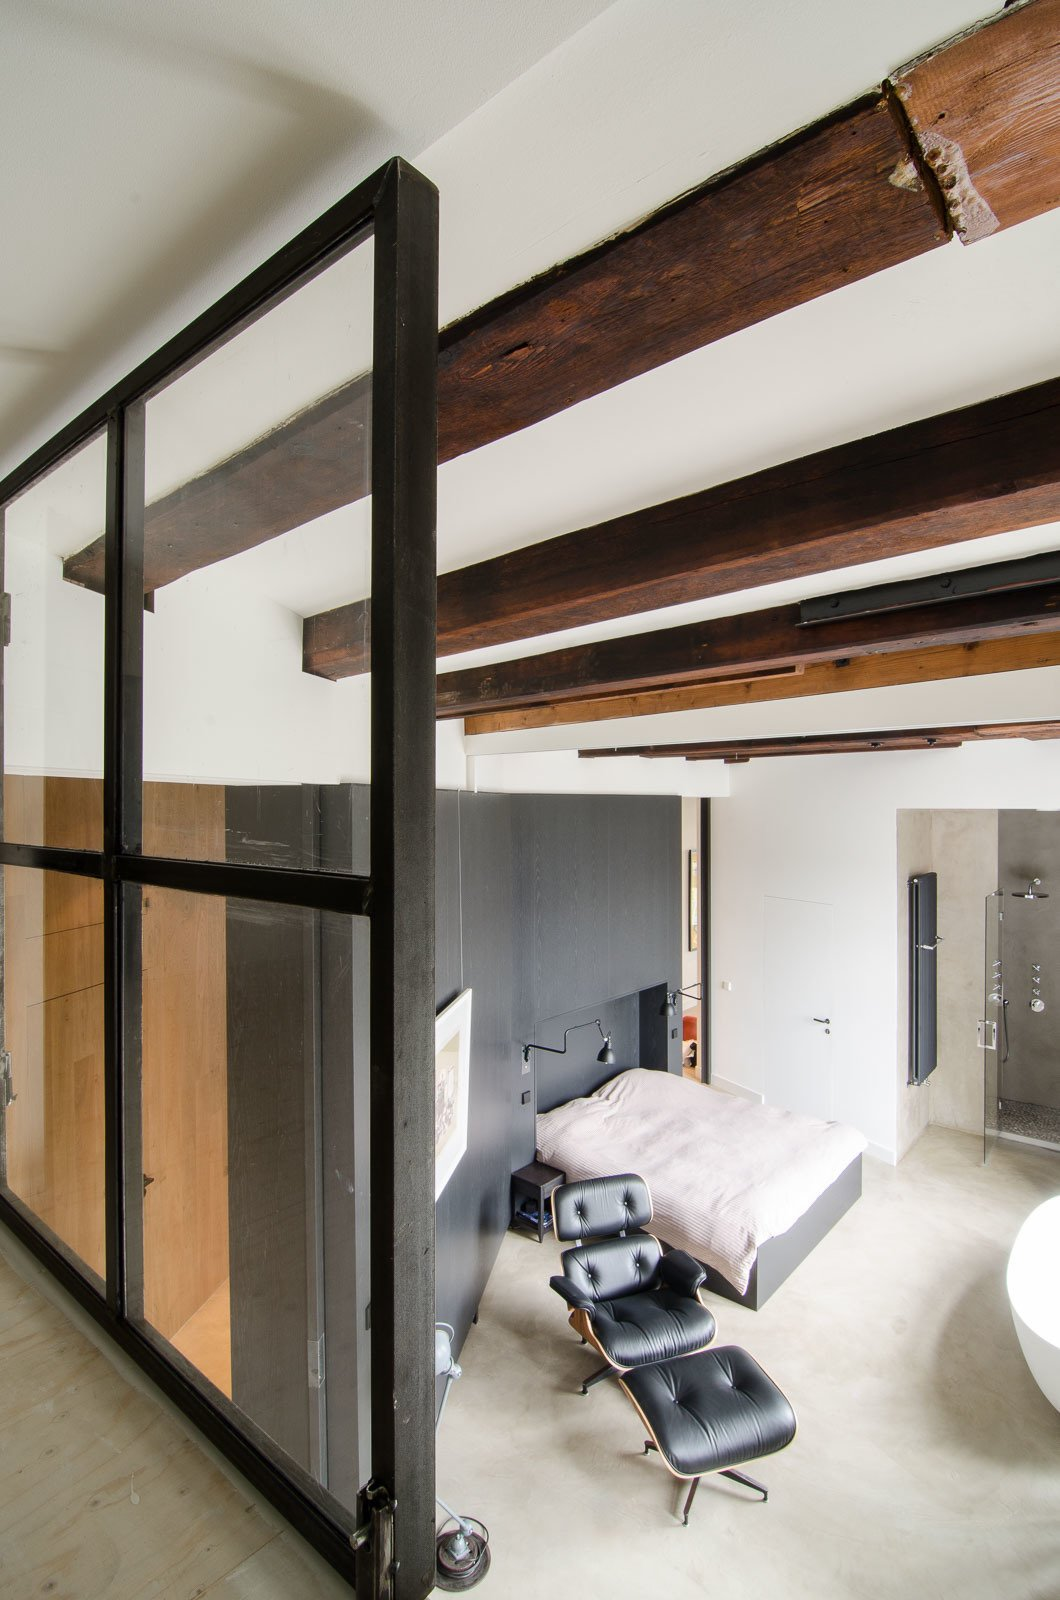 "The original beams, as seen from the loft, offer a warm and textural contrast to the sleek and modern finishes introduced during the renovation. ""There's a lot of nice patina to the very old beams; we definitely wanted to show that,"" says van Hulzen."